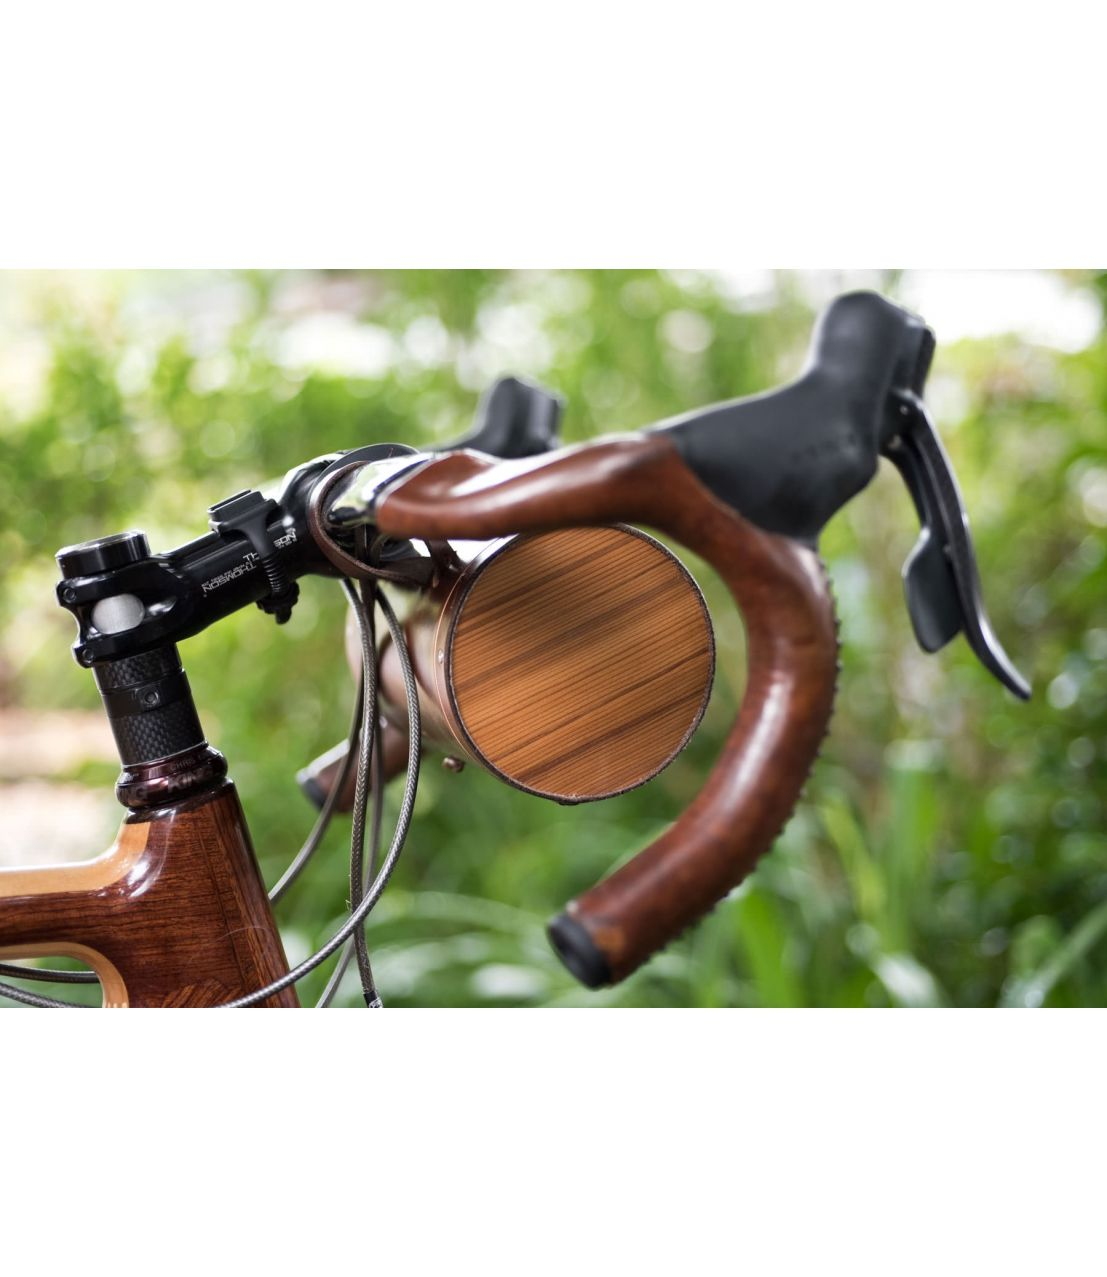 "Walnut Handlebar Barrel Bag - <p>If you like the look of the Walnut Handlebar Barrel Bag but would prefer something which is seat-mounted, check out their awesome <a href=""/walnut-seat-barrel-bag.html"">Seat Barrel Bag</a>! You can also buy a <a href=""/walnut-barrel-bag-installation-belt-for-saddles.html"">separate installation belt</a> so that you can switch between mounting the barrel bag on the handlebars and on the saddle.</p>"